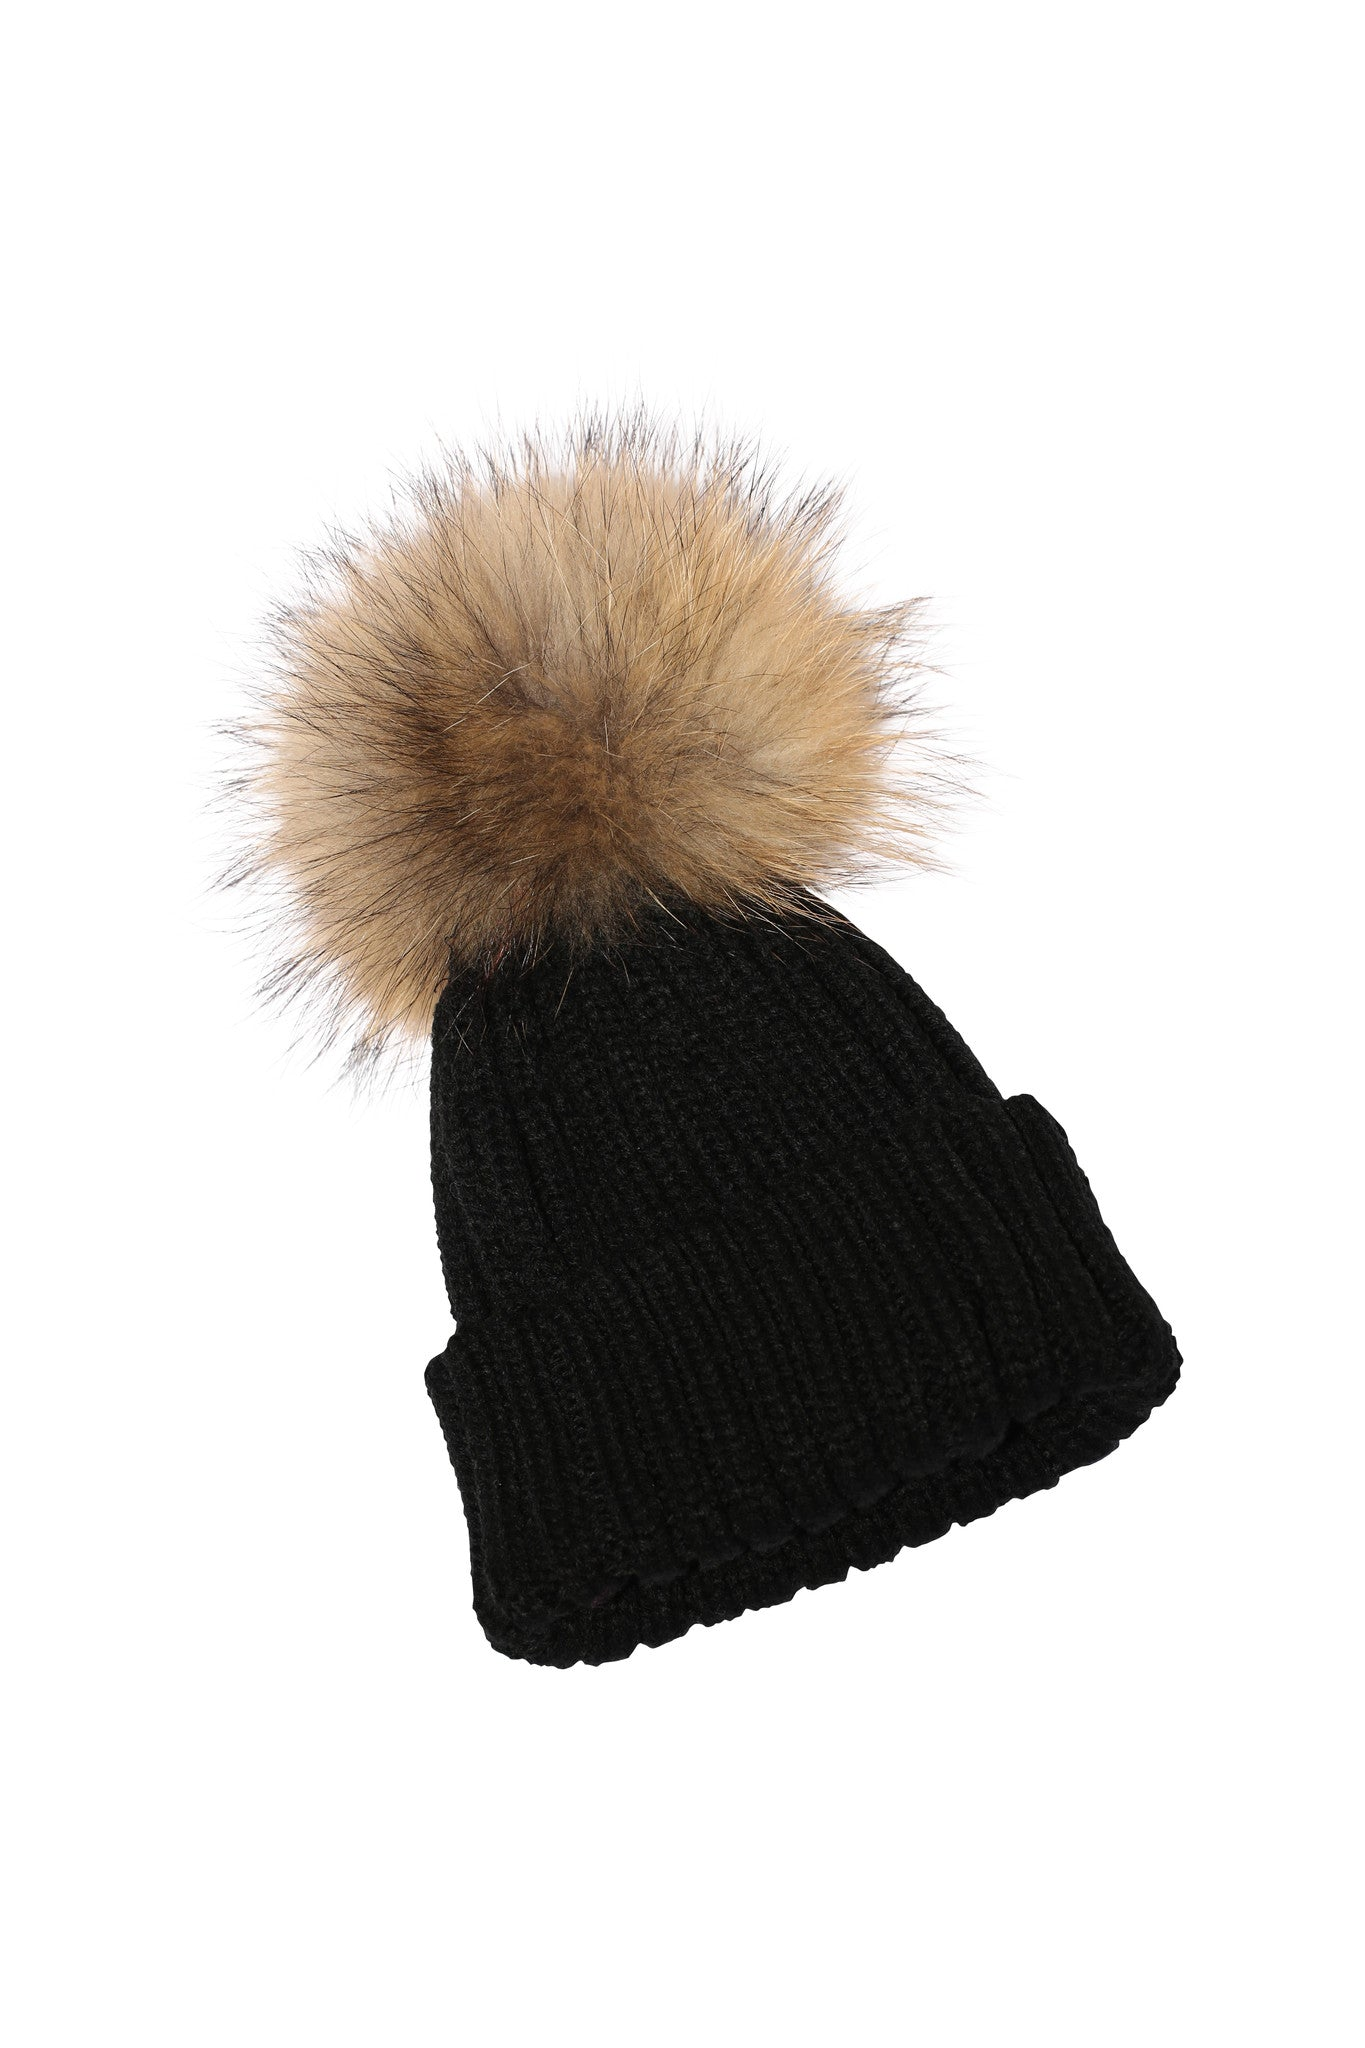 271e0ff8637 PicPop Adult Black Knitted Hat With Natural Raccoon Fur Pom Pom ...